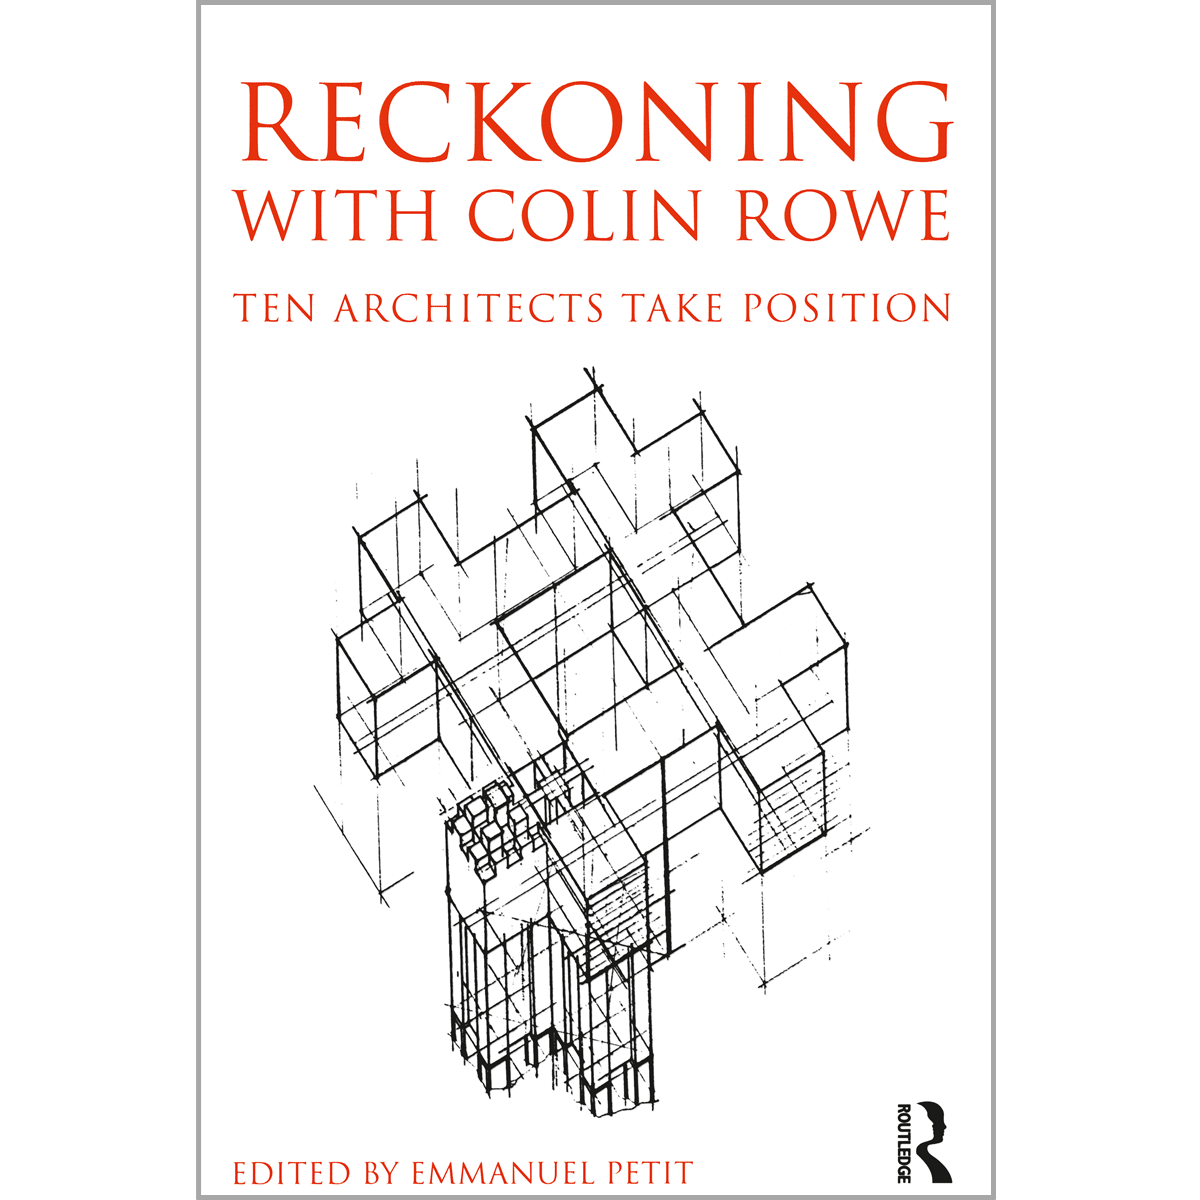 Reckoning with Colin Rowe